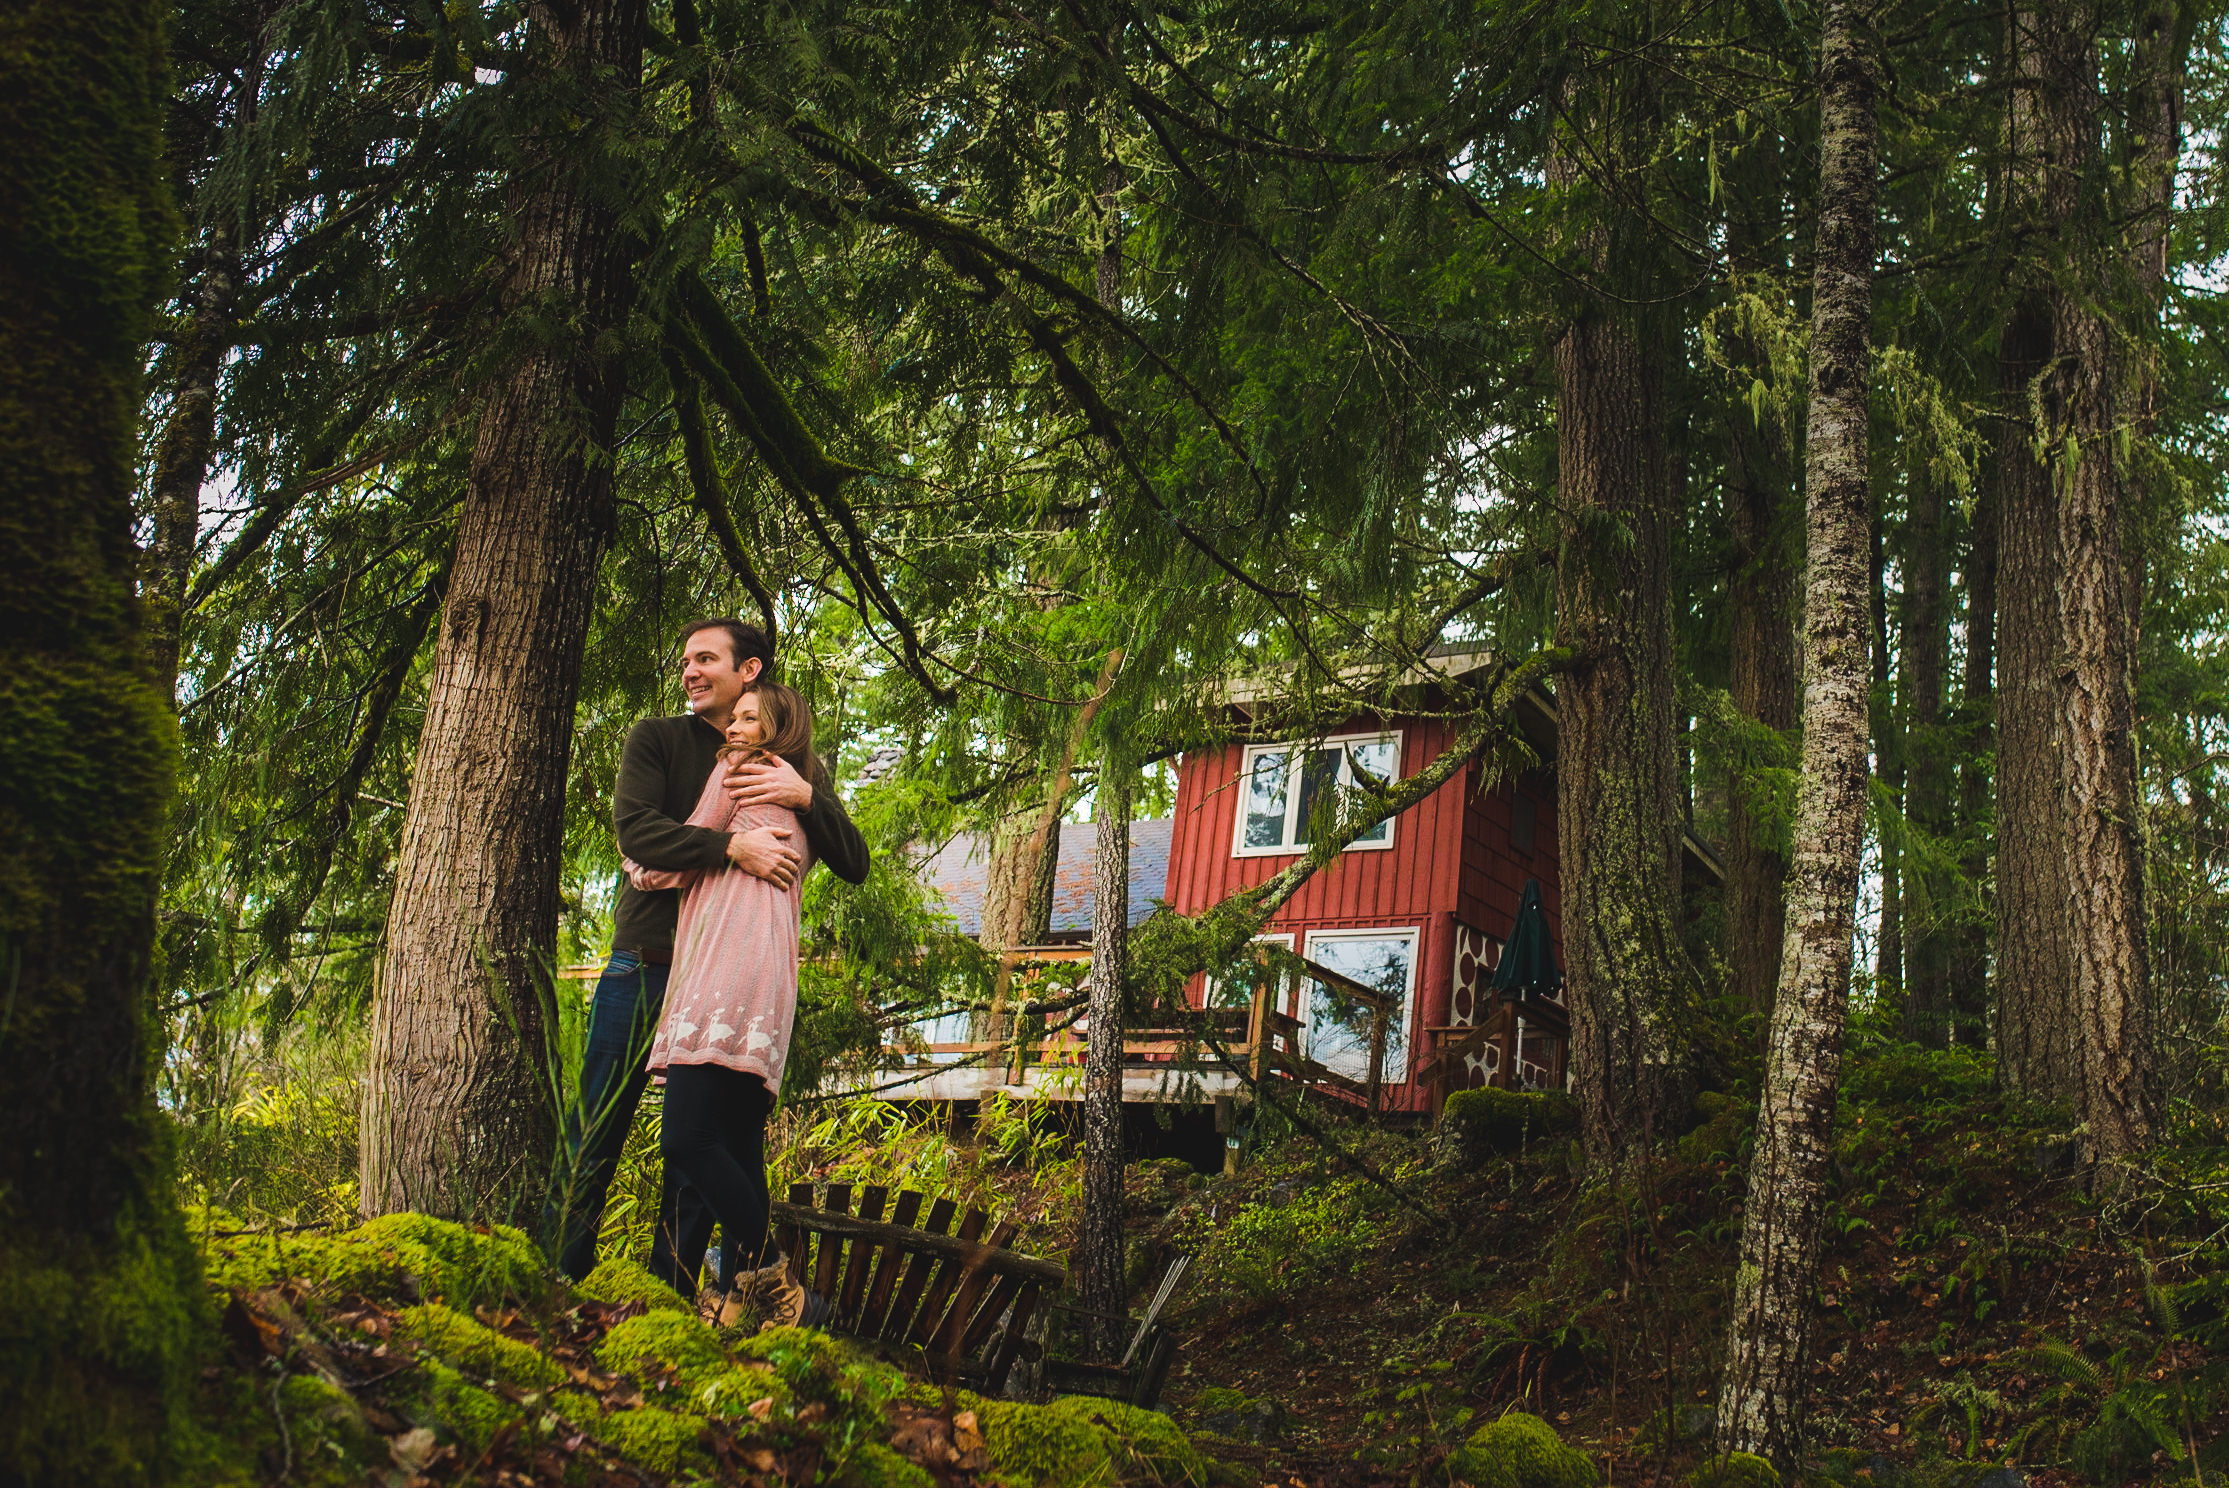 Engagement Photographer in Portland Mantas Kubilinskas-6.jpg